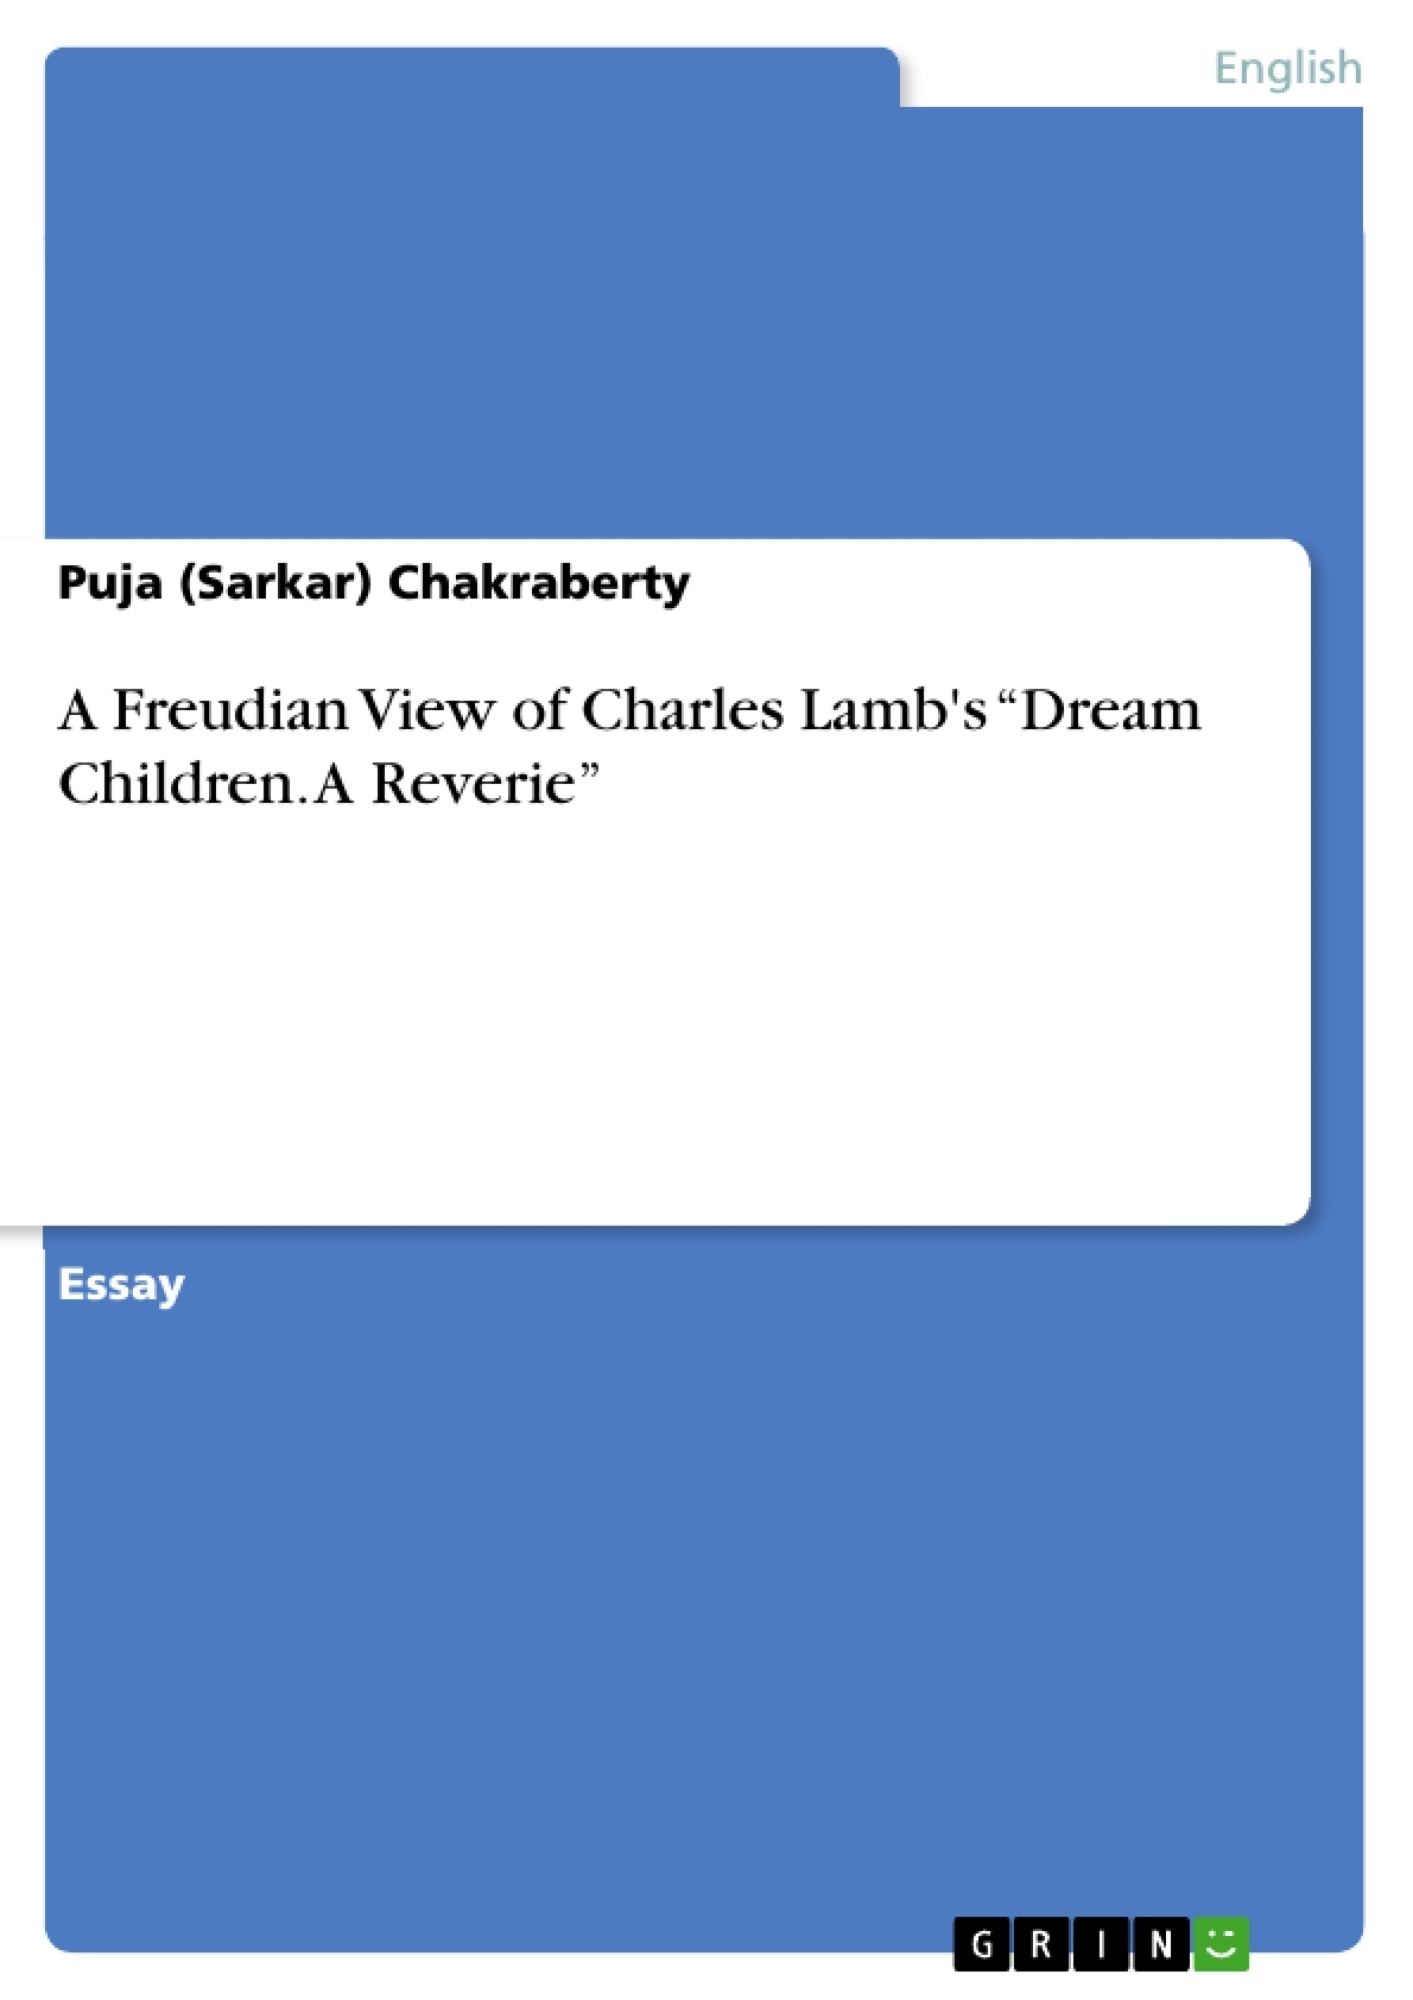 "a freudian view of charles lamb s ""dream children a reverie  upload your own papers earn money and win an iphone x"